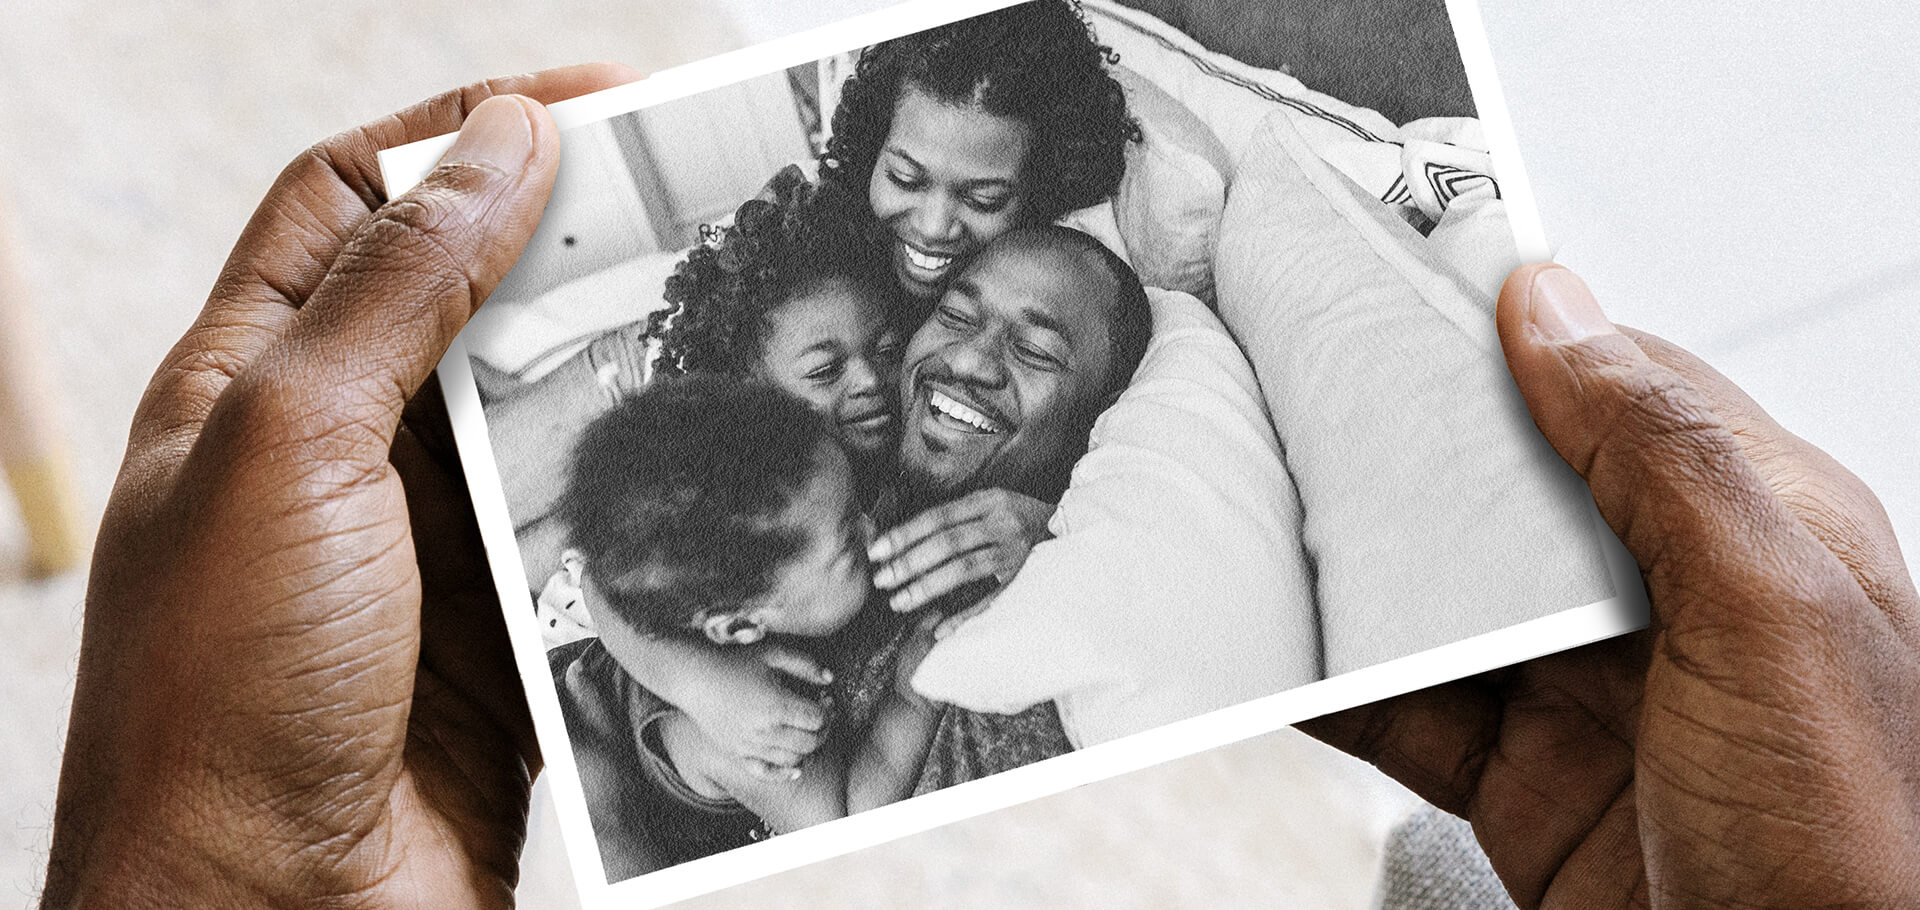 Hands holding DIY postcard with photo of family laughing and lounging on bed